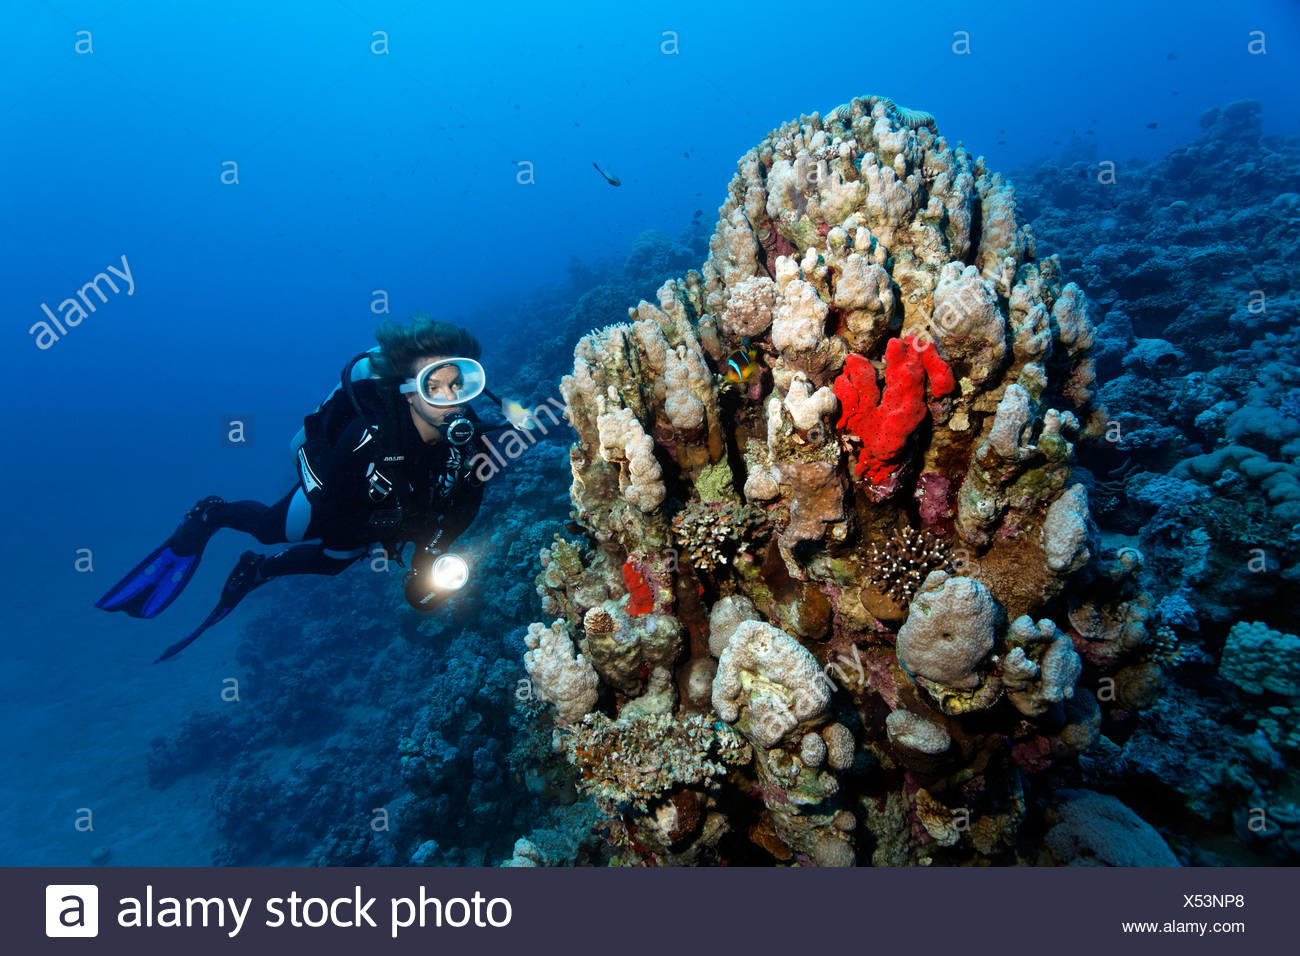 Diver, reefslope with coral block, several stone corals, sponges, Hashemite Kingdom of Jordan, Red Sea, Western Asia - Stock Image